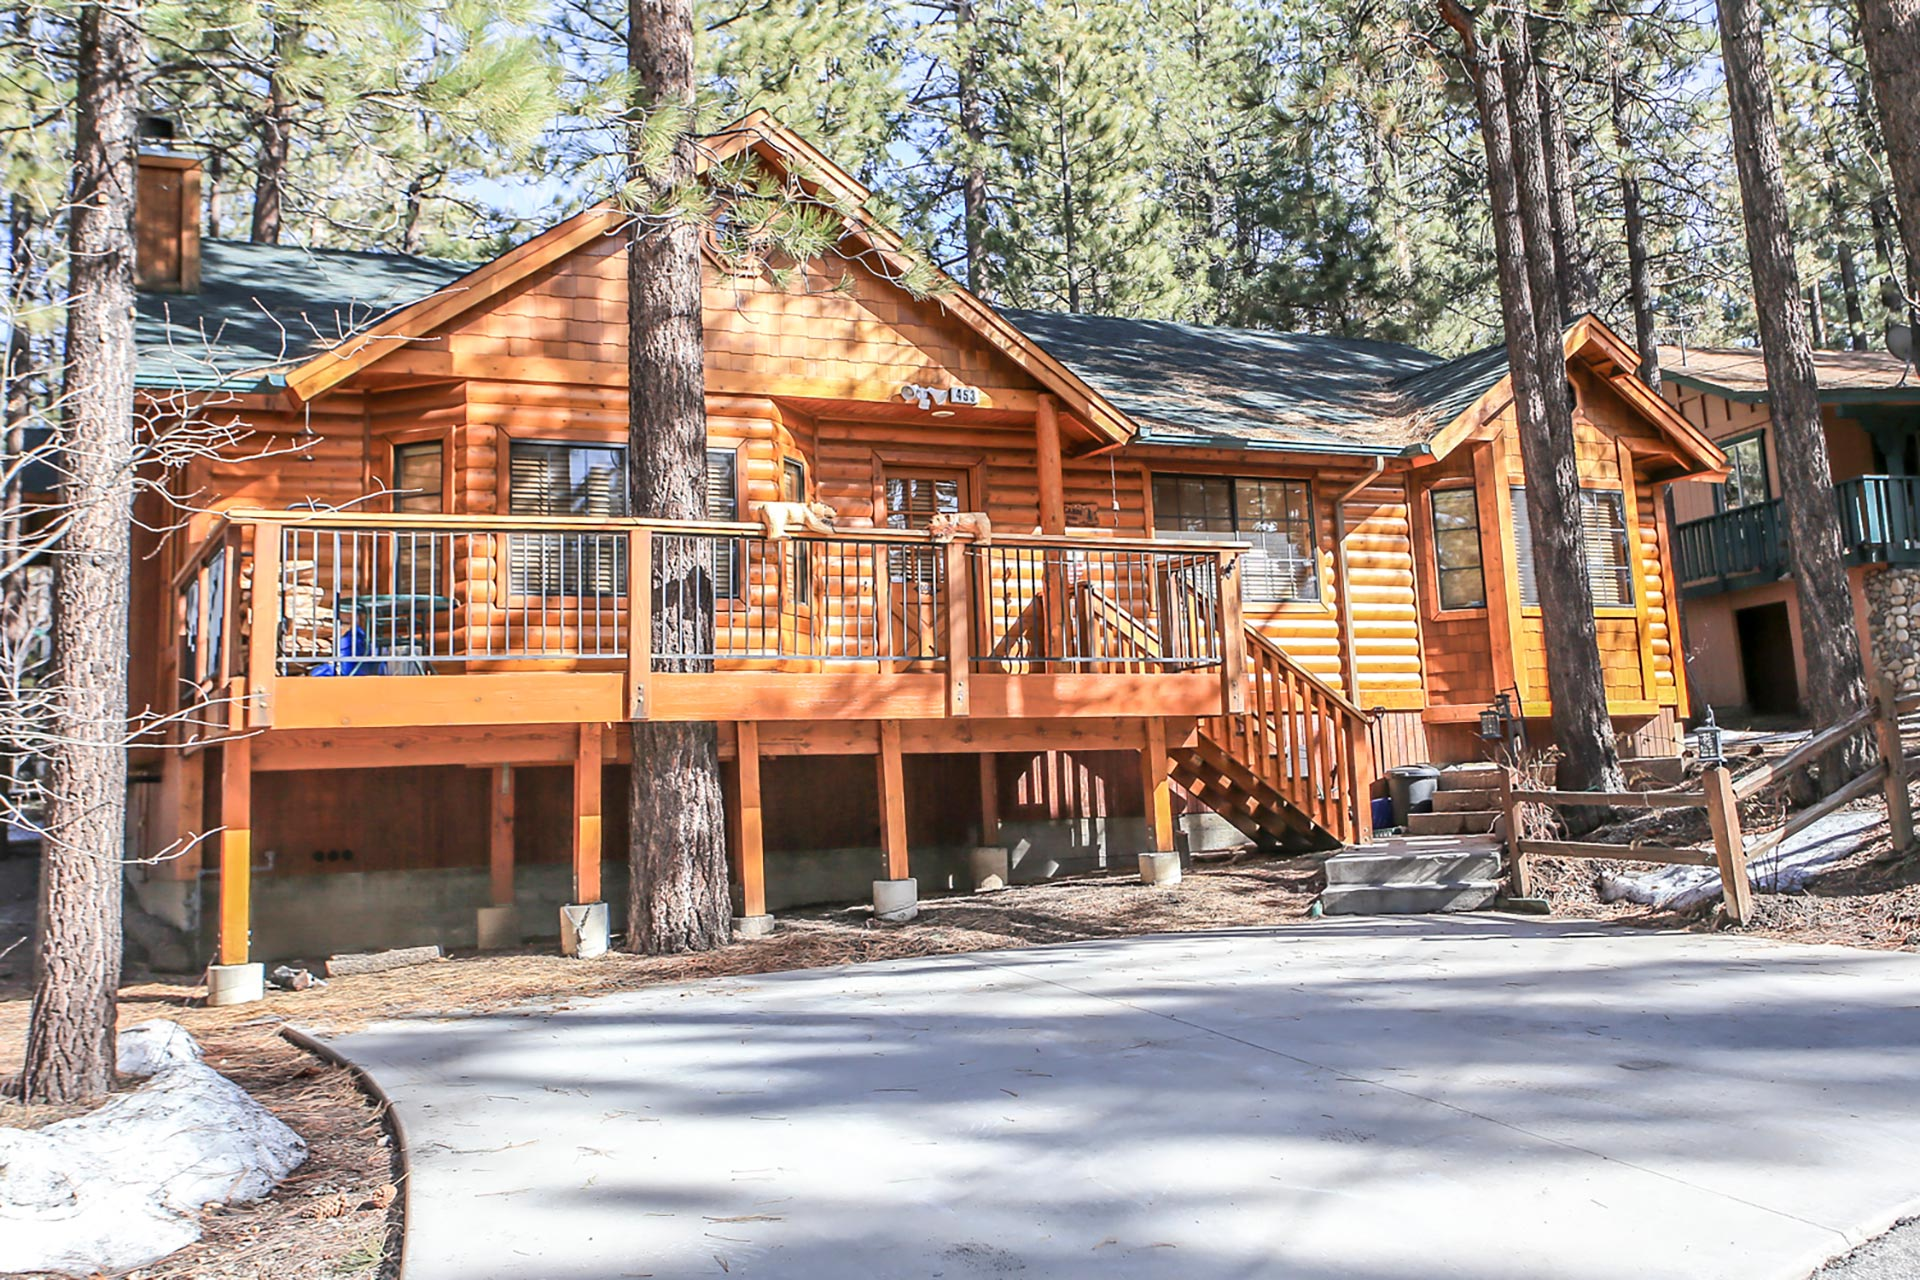 1662 retreat to fox farm ra155217 redawning Big bear lakefront cabins for rent